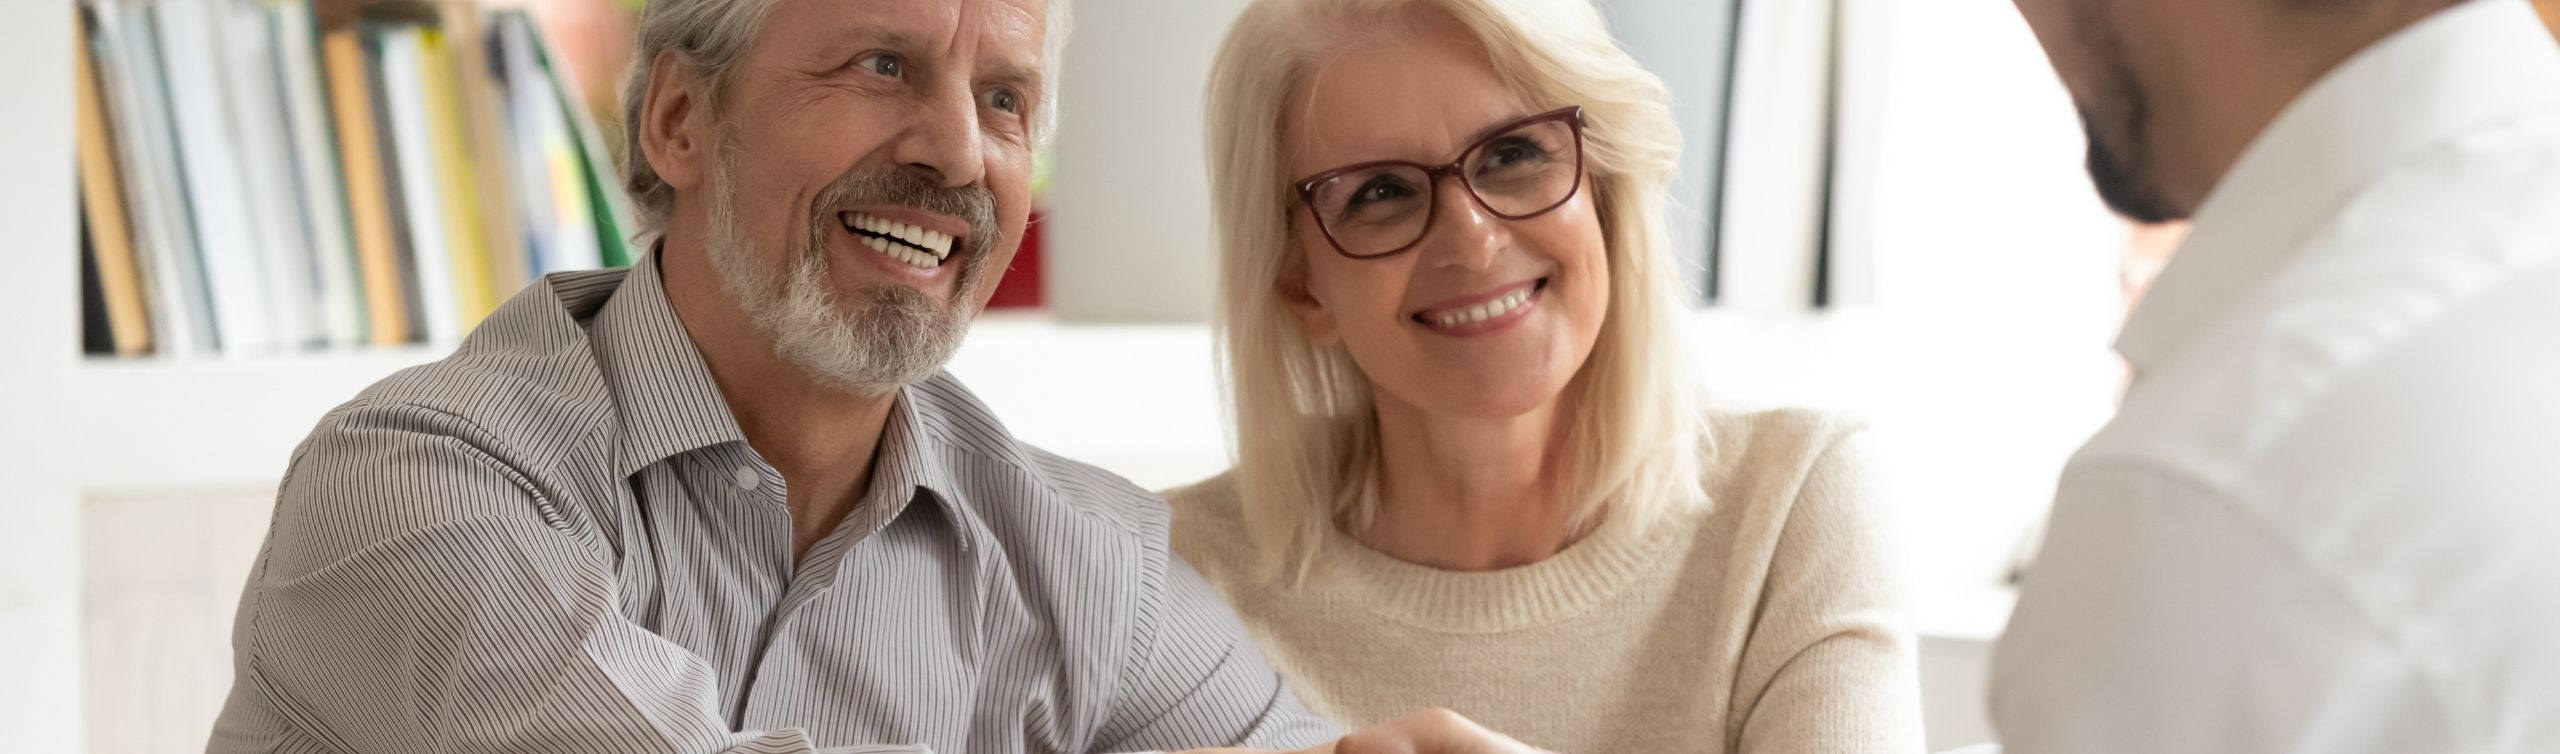 couple meeting with professional to discuss irrevocable trust disadvantages and advantages